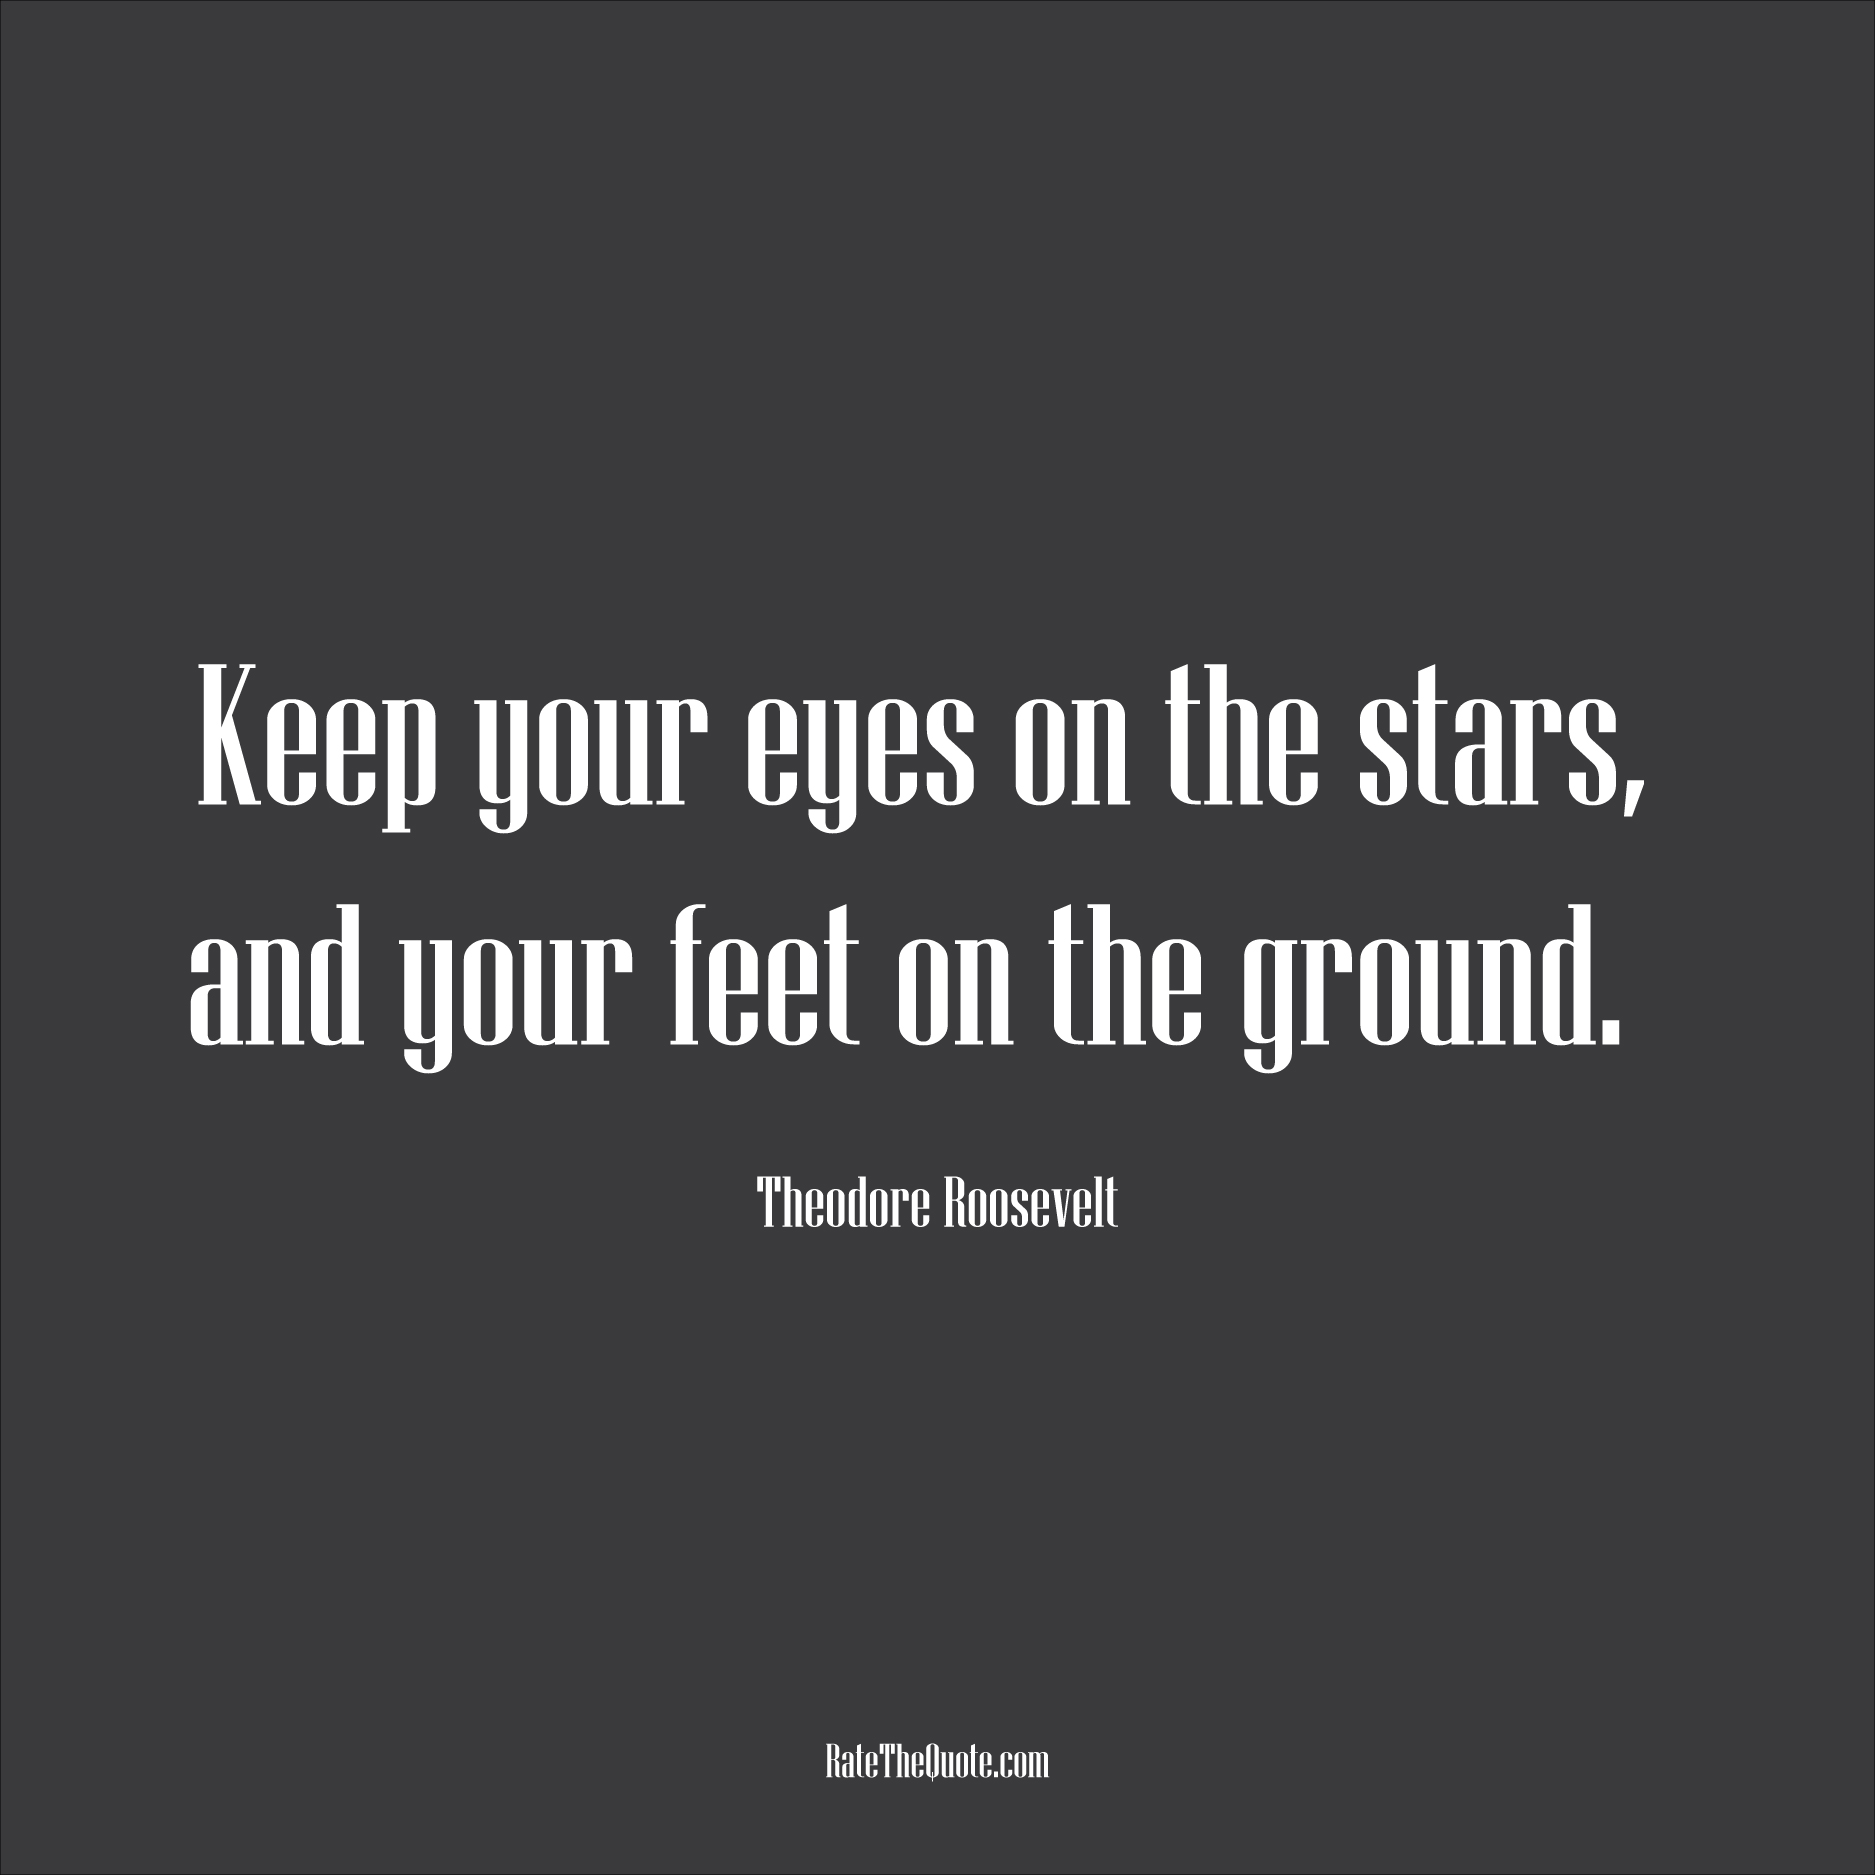 Motivational Quotes Keep your eyes on the stars, and your feet on the ground. Theodore Roosevelt